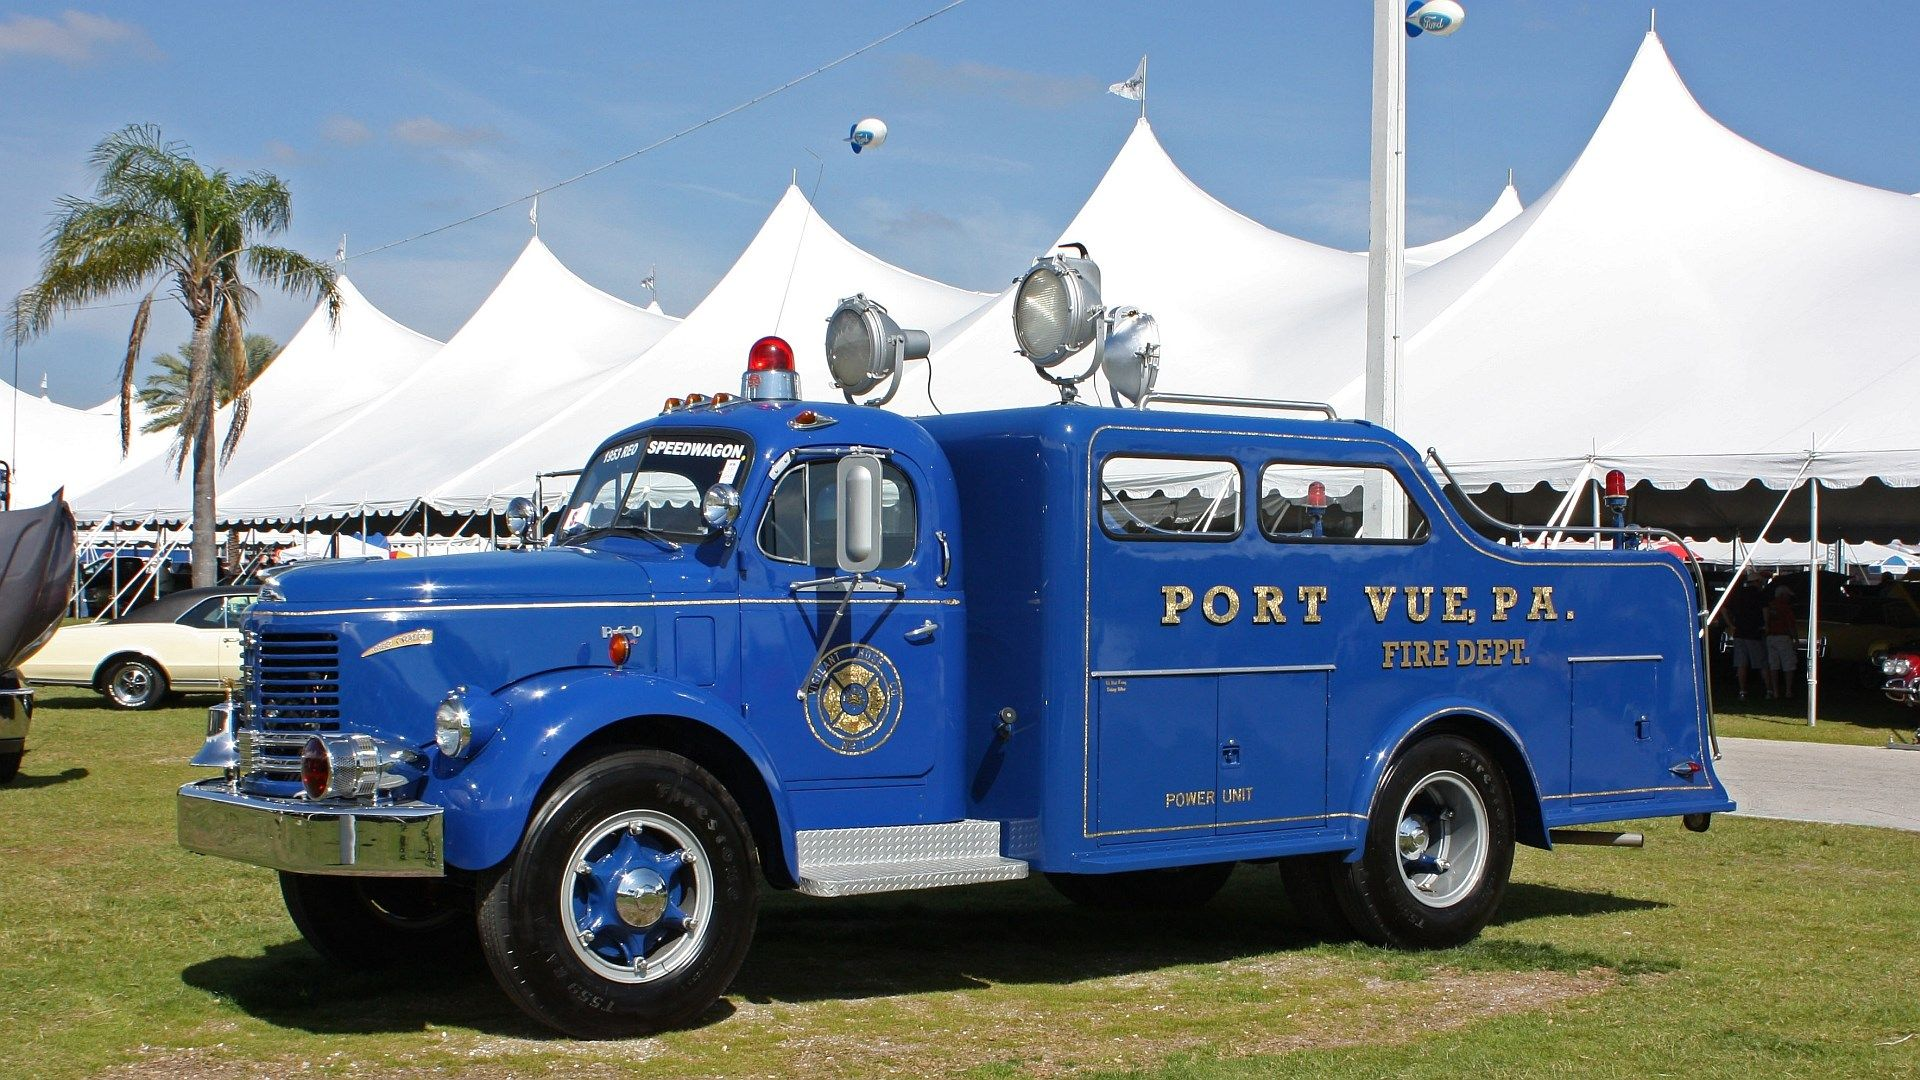 1920x1080 Px Truck Image Free For Desktop By Jarrell Robin Fire Trucks Fire Rescue Rescue Vehicles